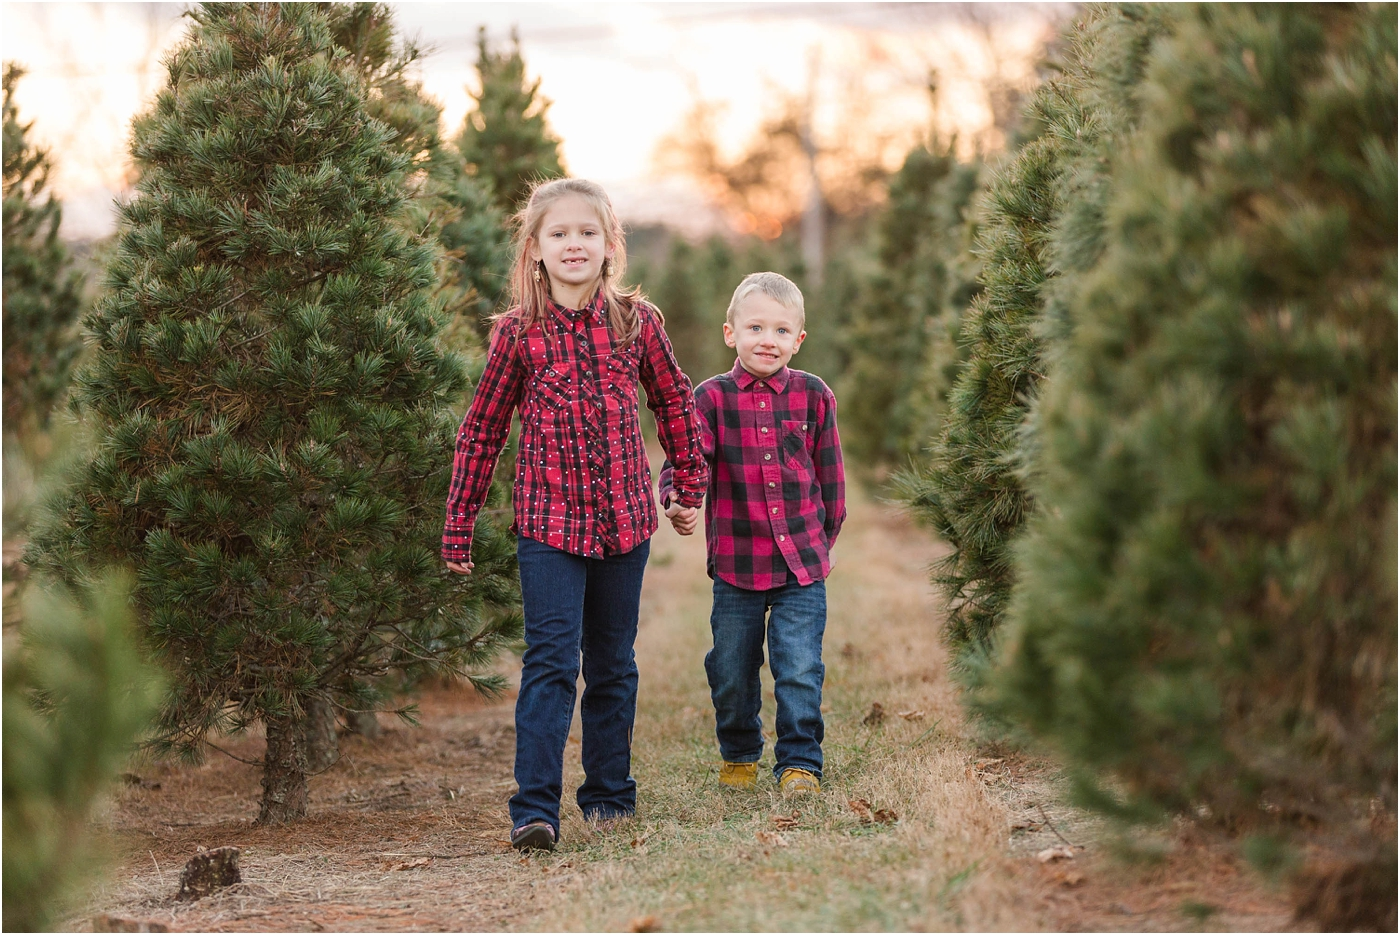 Christmas Tree Farm Photography.Lindzie Jake Christmas Tree Farm Mini Session Maryland